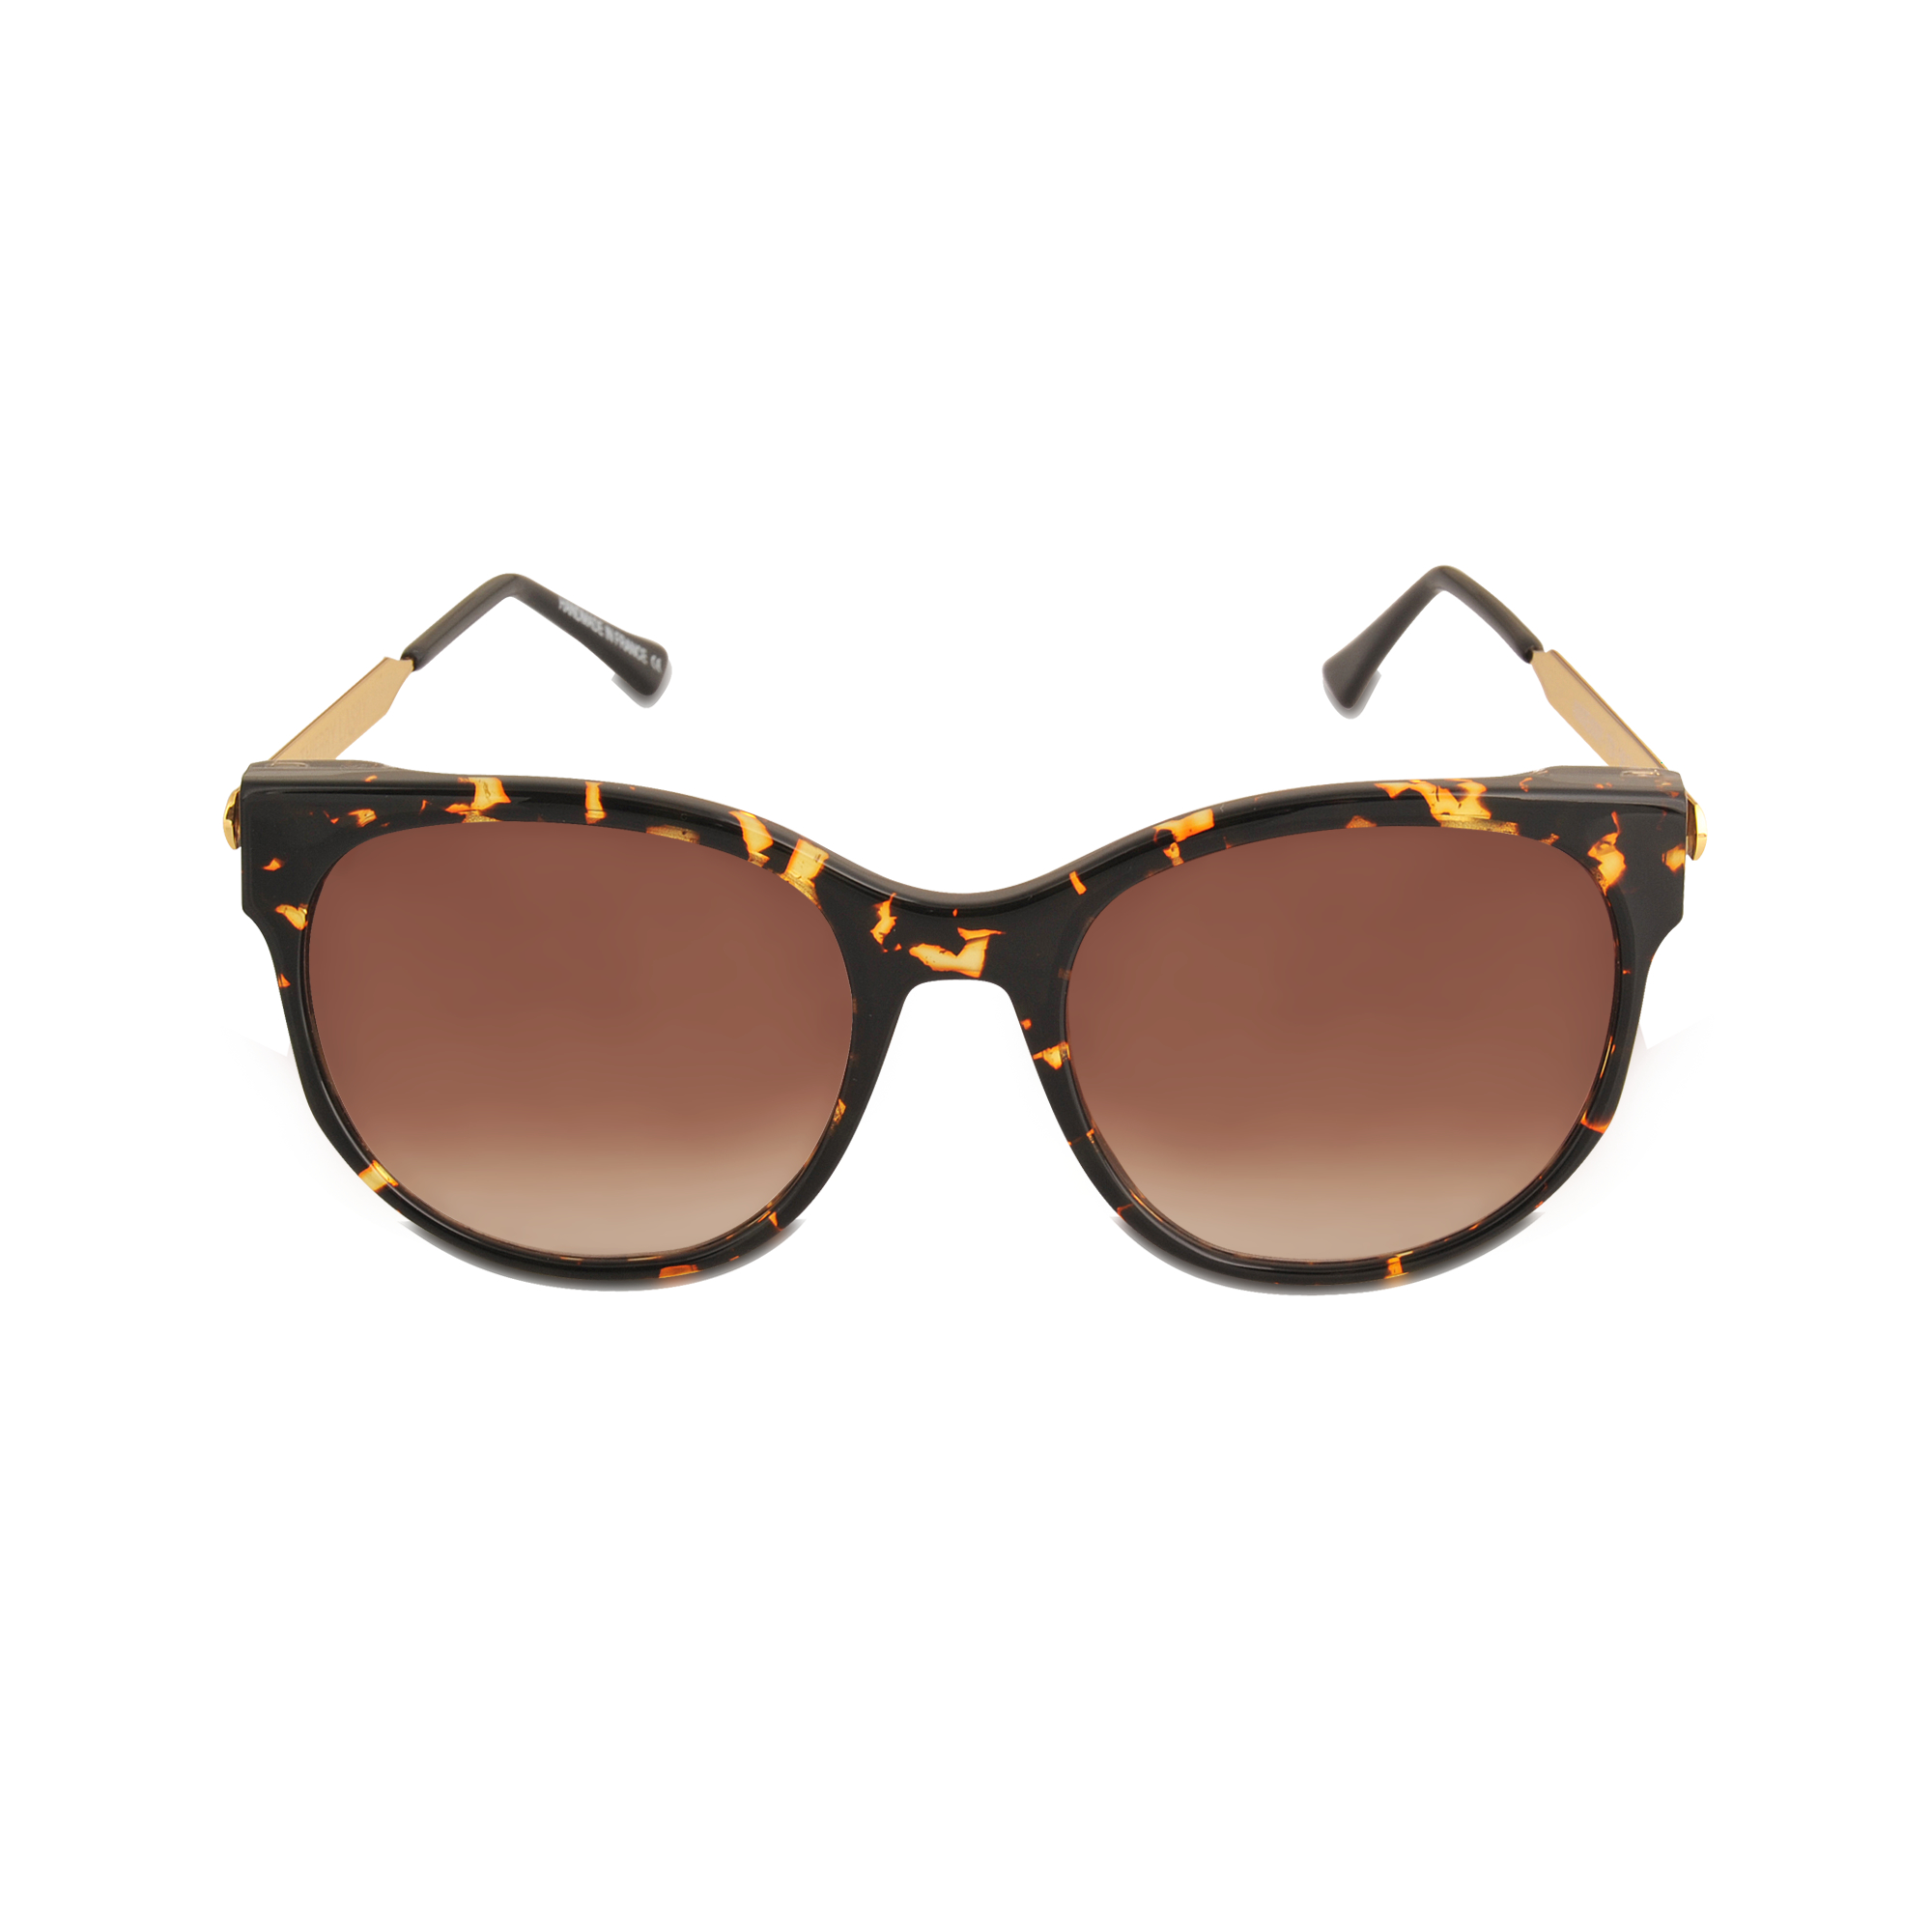 Thierry lasry Axxxexxxy Sunglasses in Brown